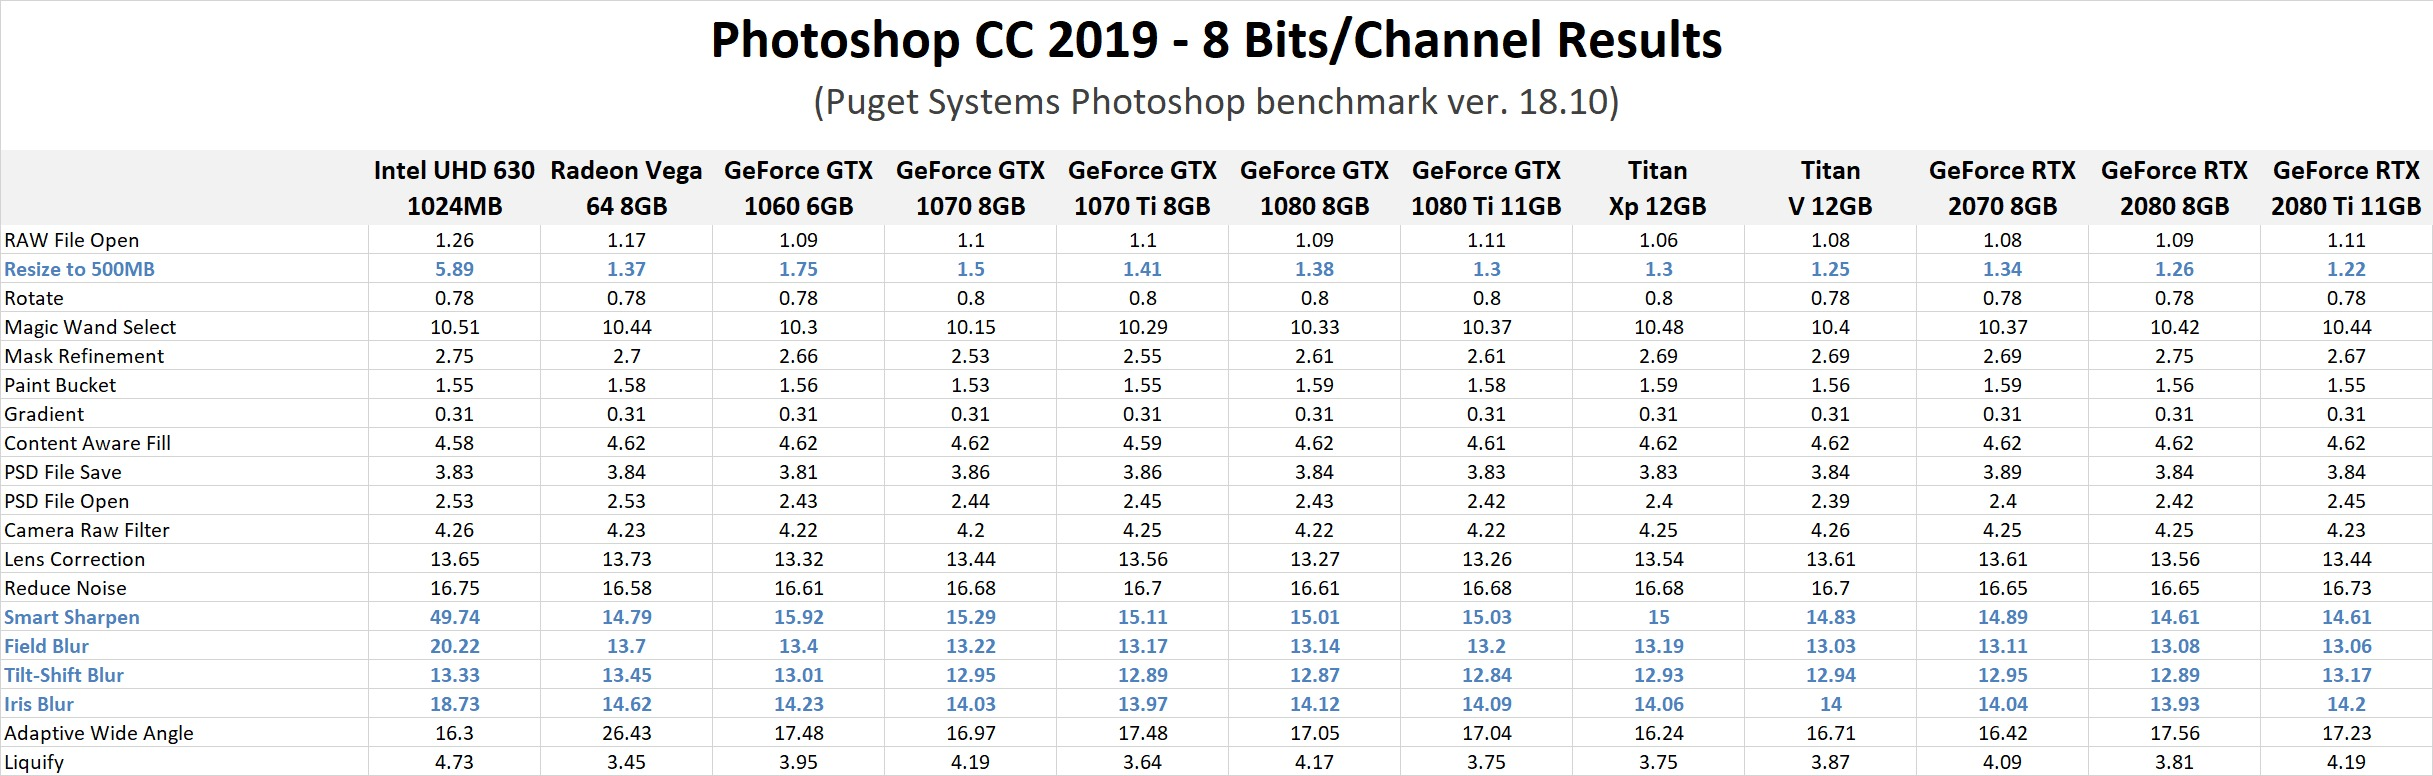 Photoshop CC 2019: NVIDIA GeForce RTX Performance